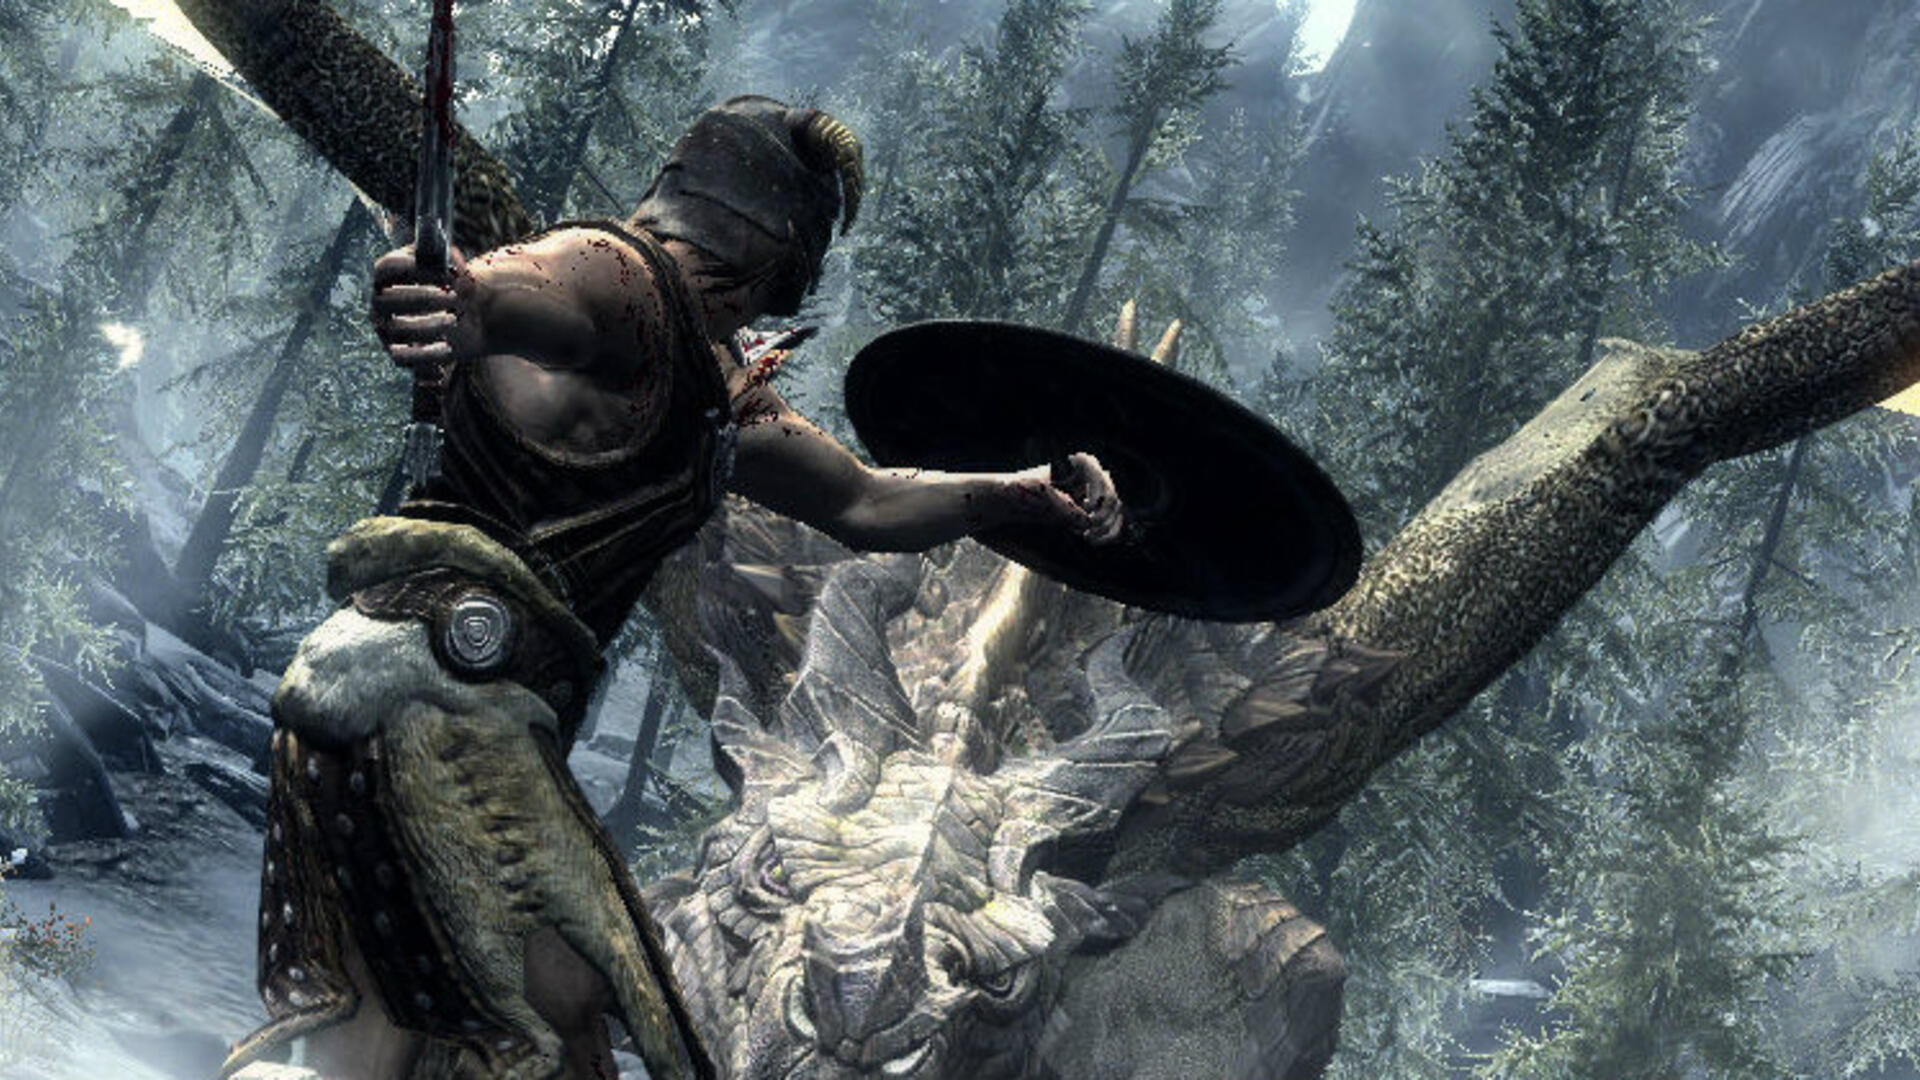 Skyrim Special Edition Xbox One Review: Shout, Shout, Let It All Out